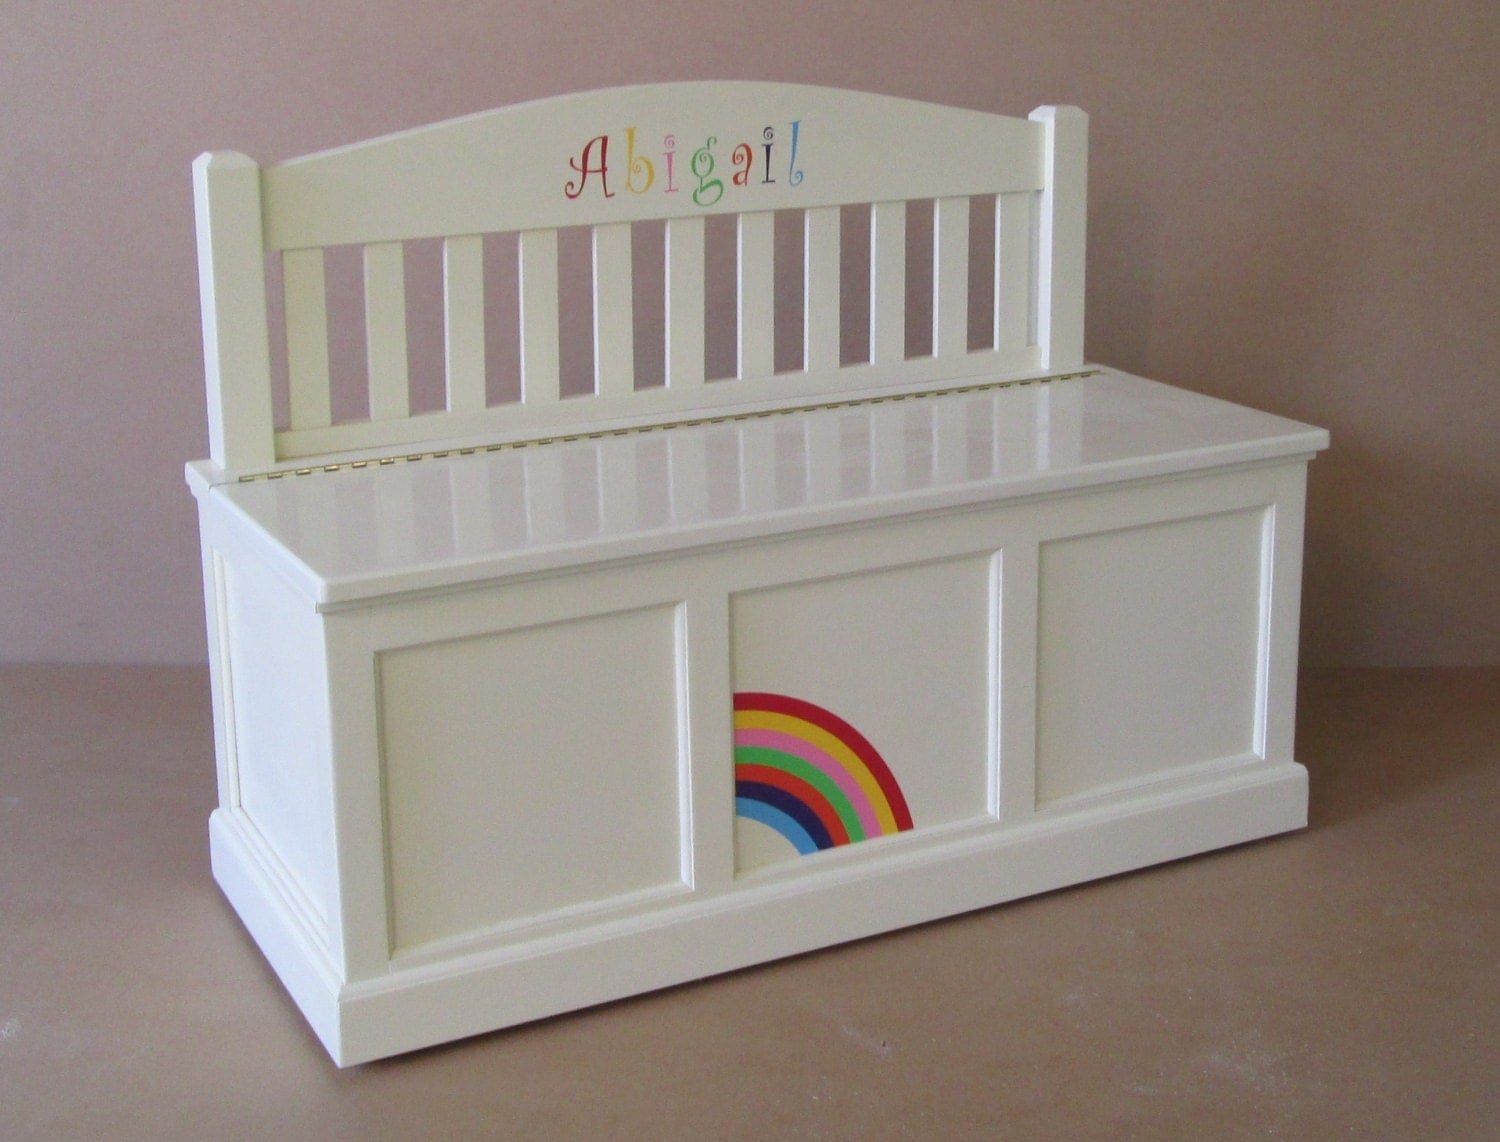 Wooden toy chest bench antique white rainbow